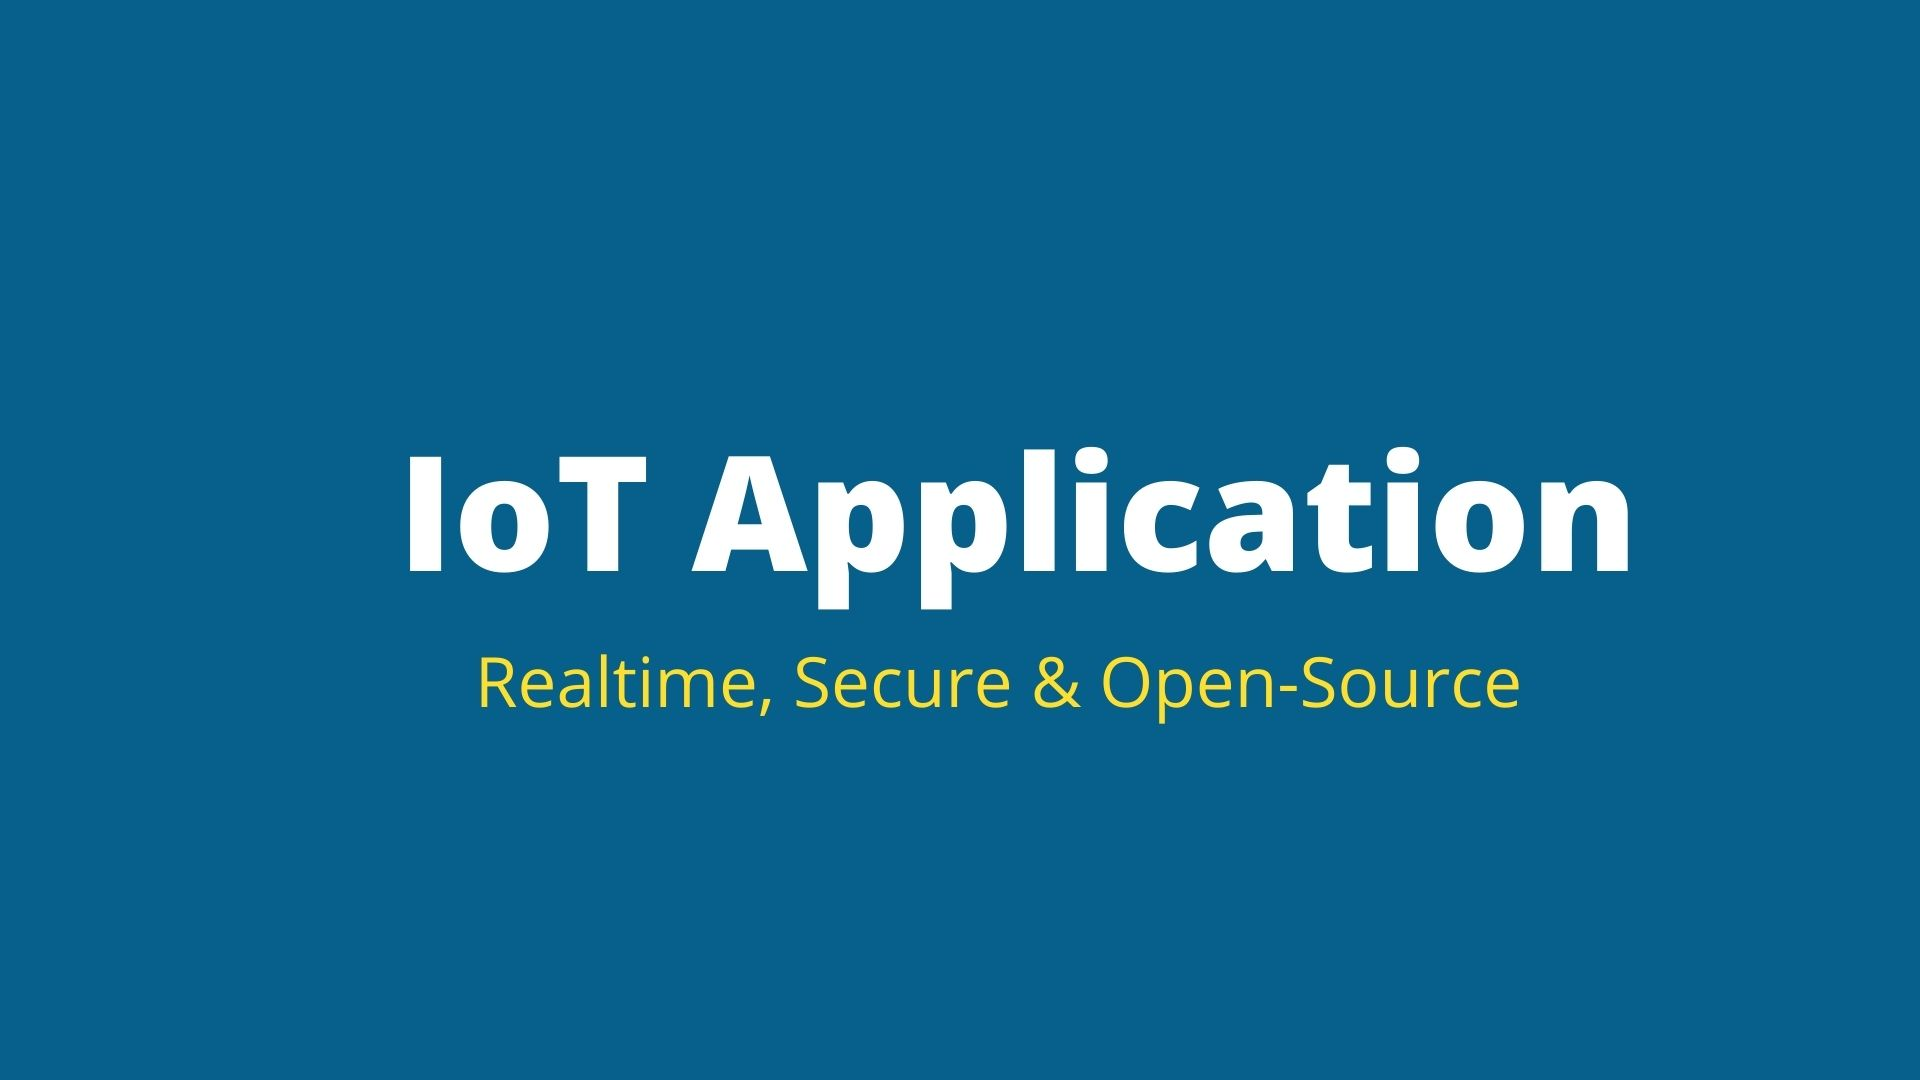 IoT Application: Realtime, Secure & Open-Source